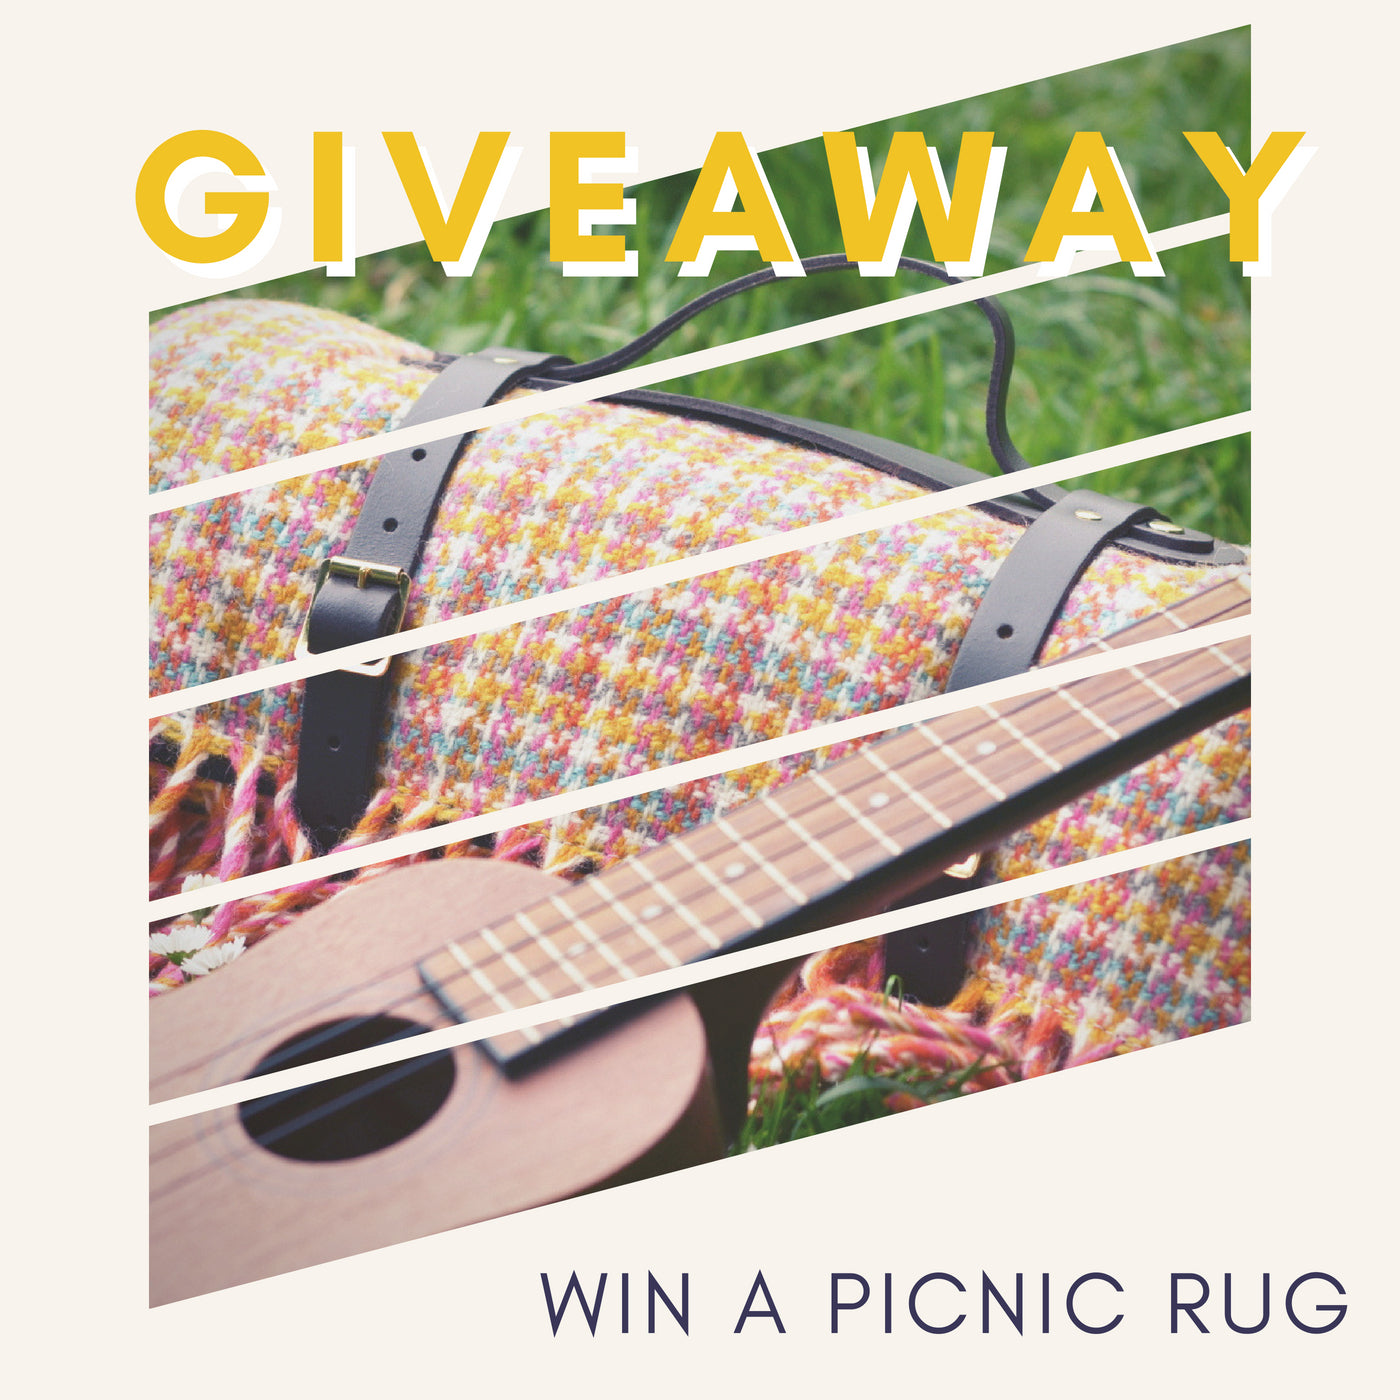 GIVEAWAY! Win a luxury picnic rug worth £99